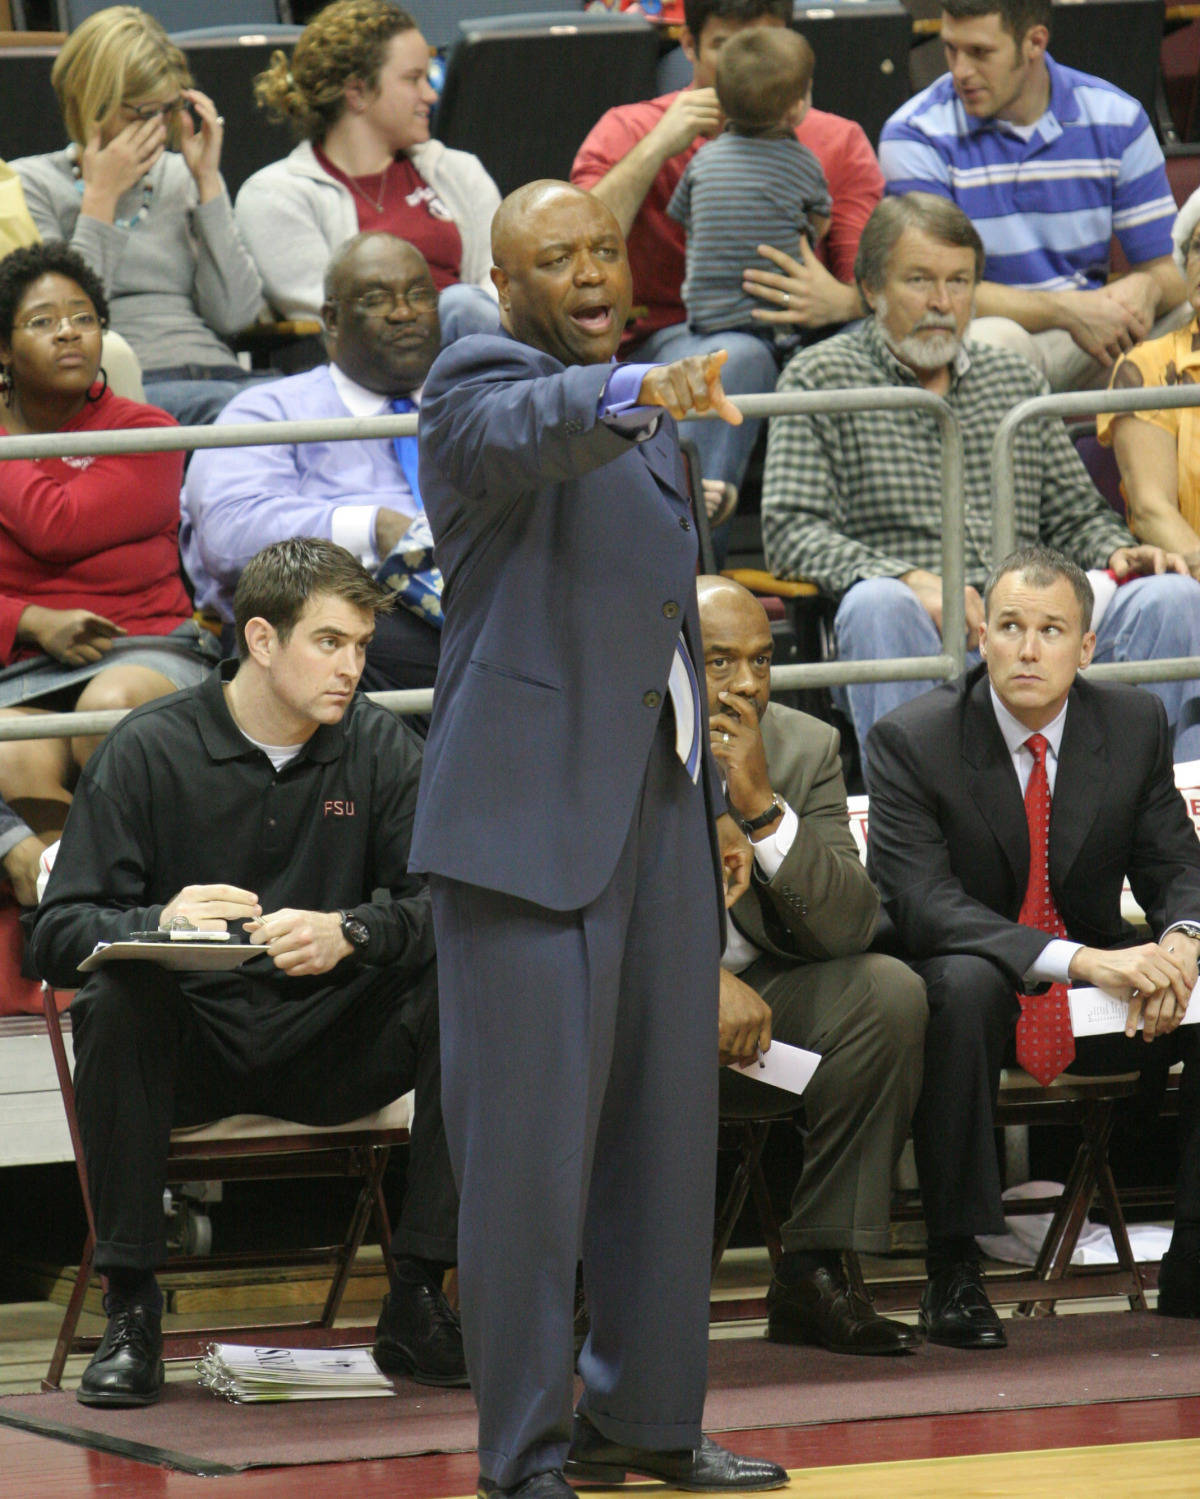 March 13, 2007: Leonard Hamilton will lead his Seminoles against Toledo in the first#$%^round of the NIT on march 13 at 6 p.m.